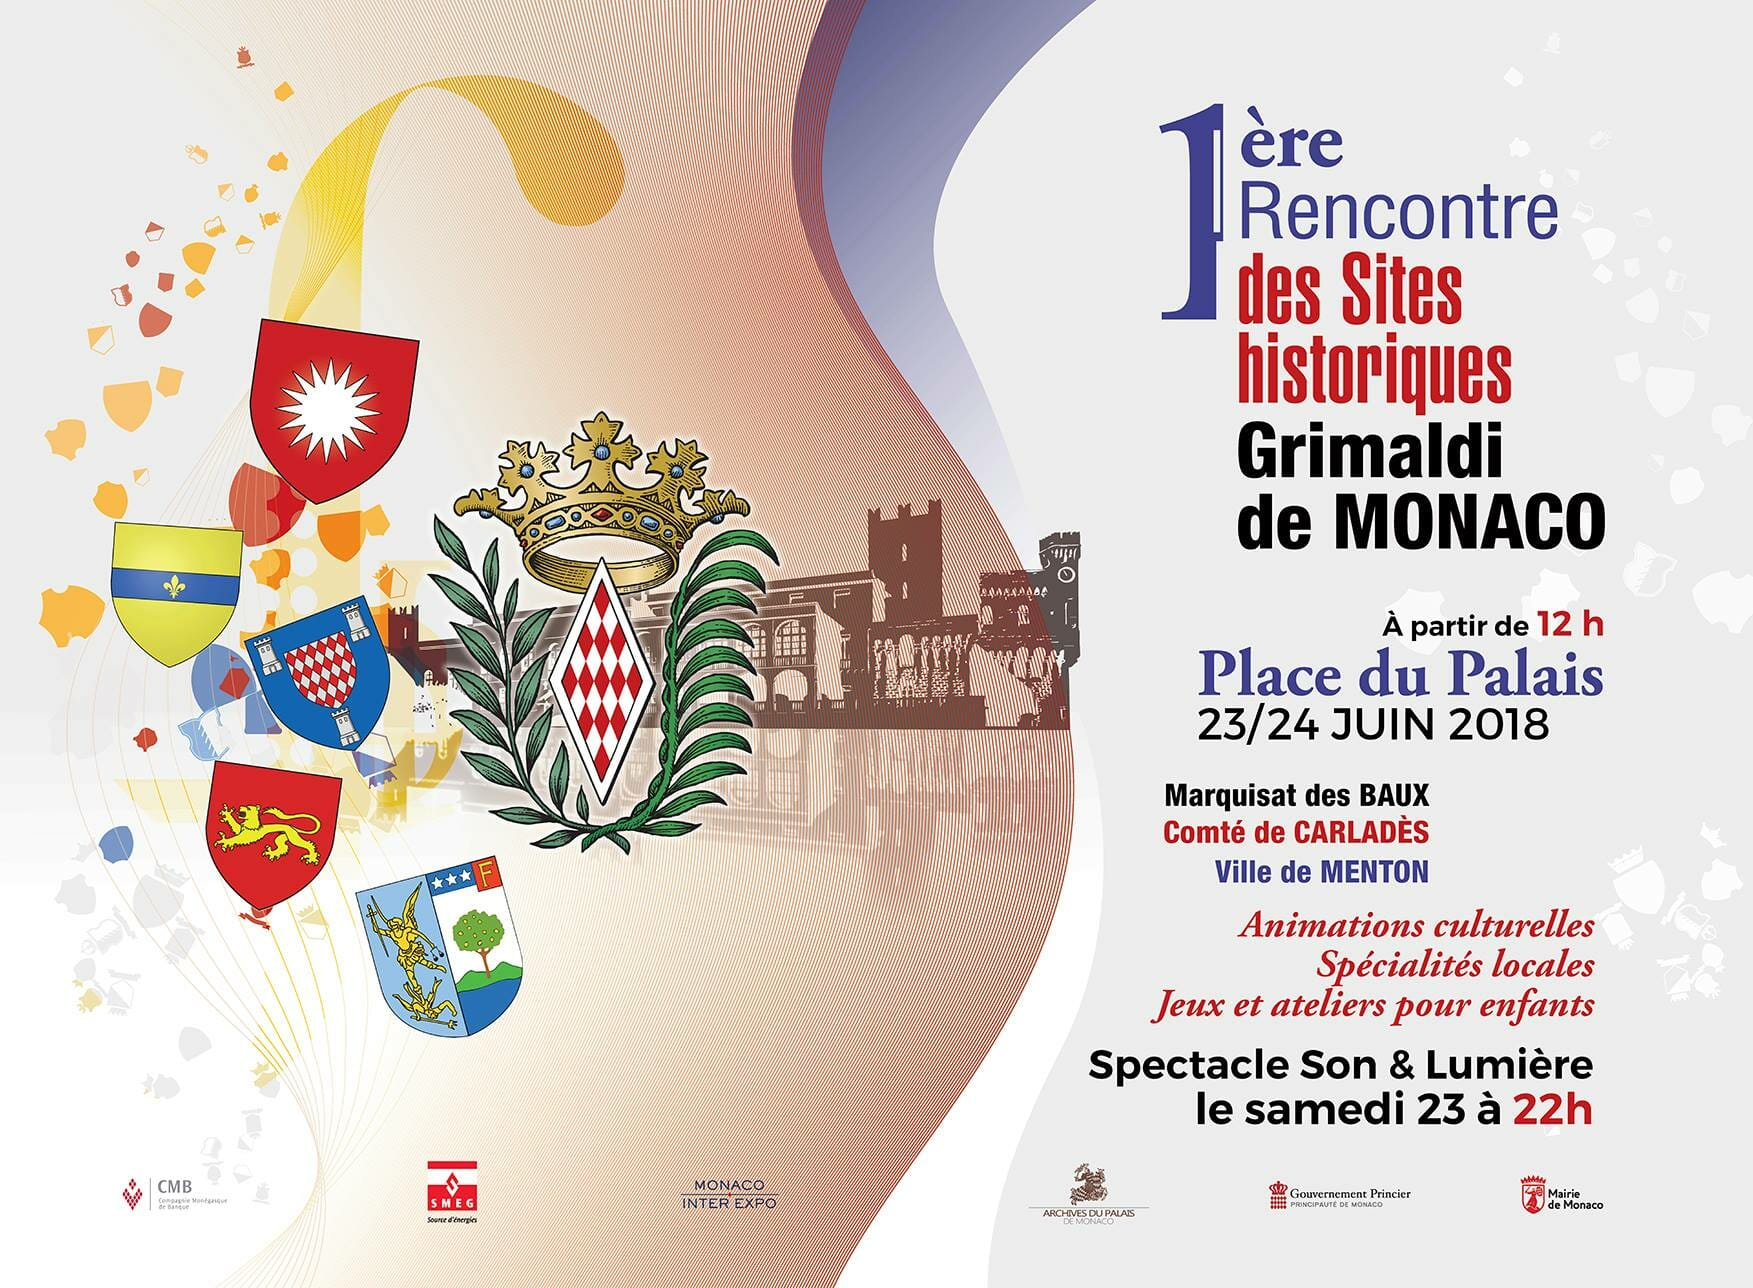 Meeting of Historical Sites of the Grimaldis of Monaco